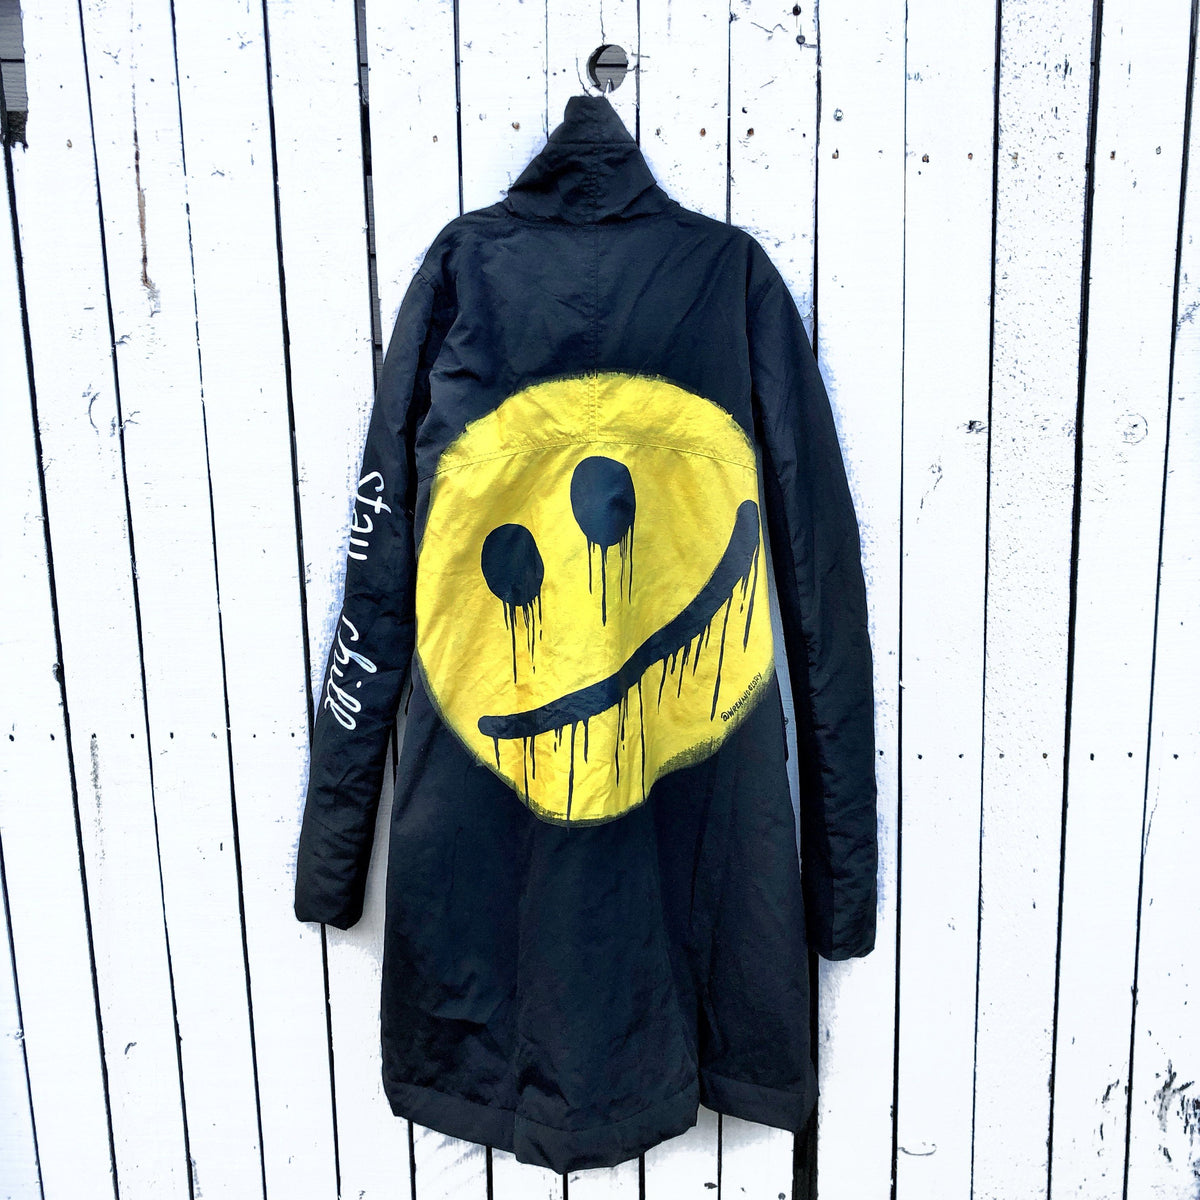 The COOLEST puffer jacket. Large smiley painted on back in yellow, with black drip eyes and mouth. STAY CHILL painted in white on sleeve. Signed @wrenandglory.